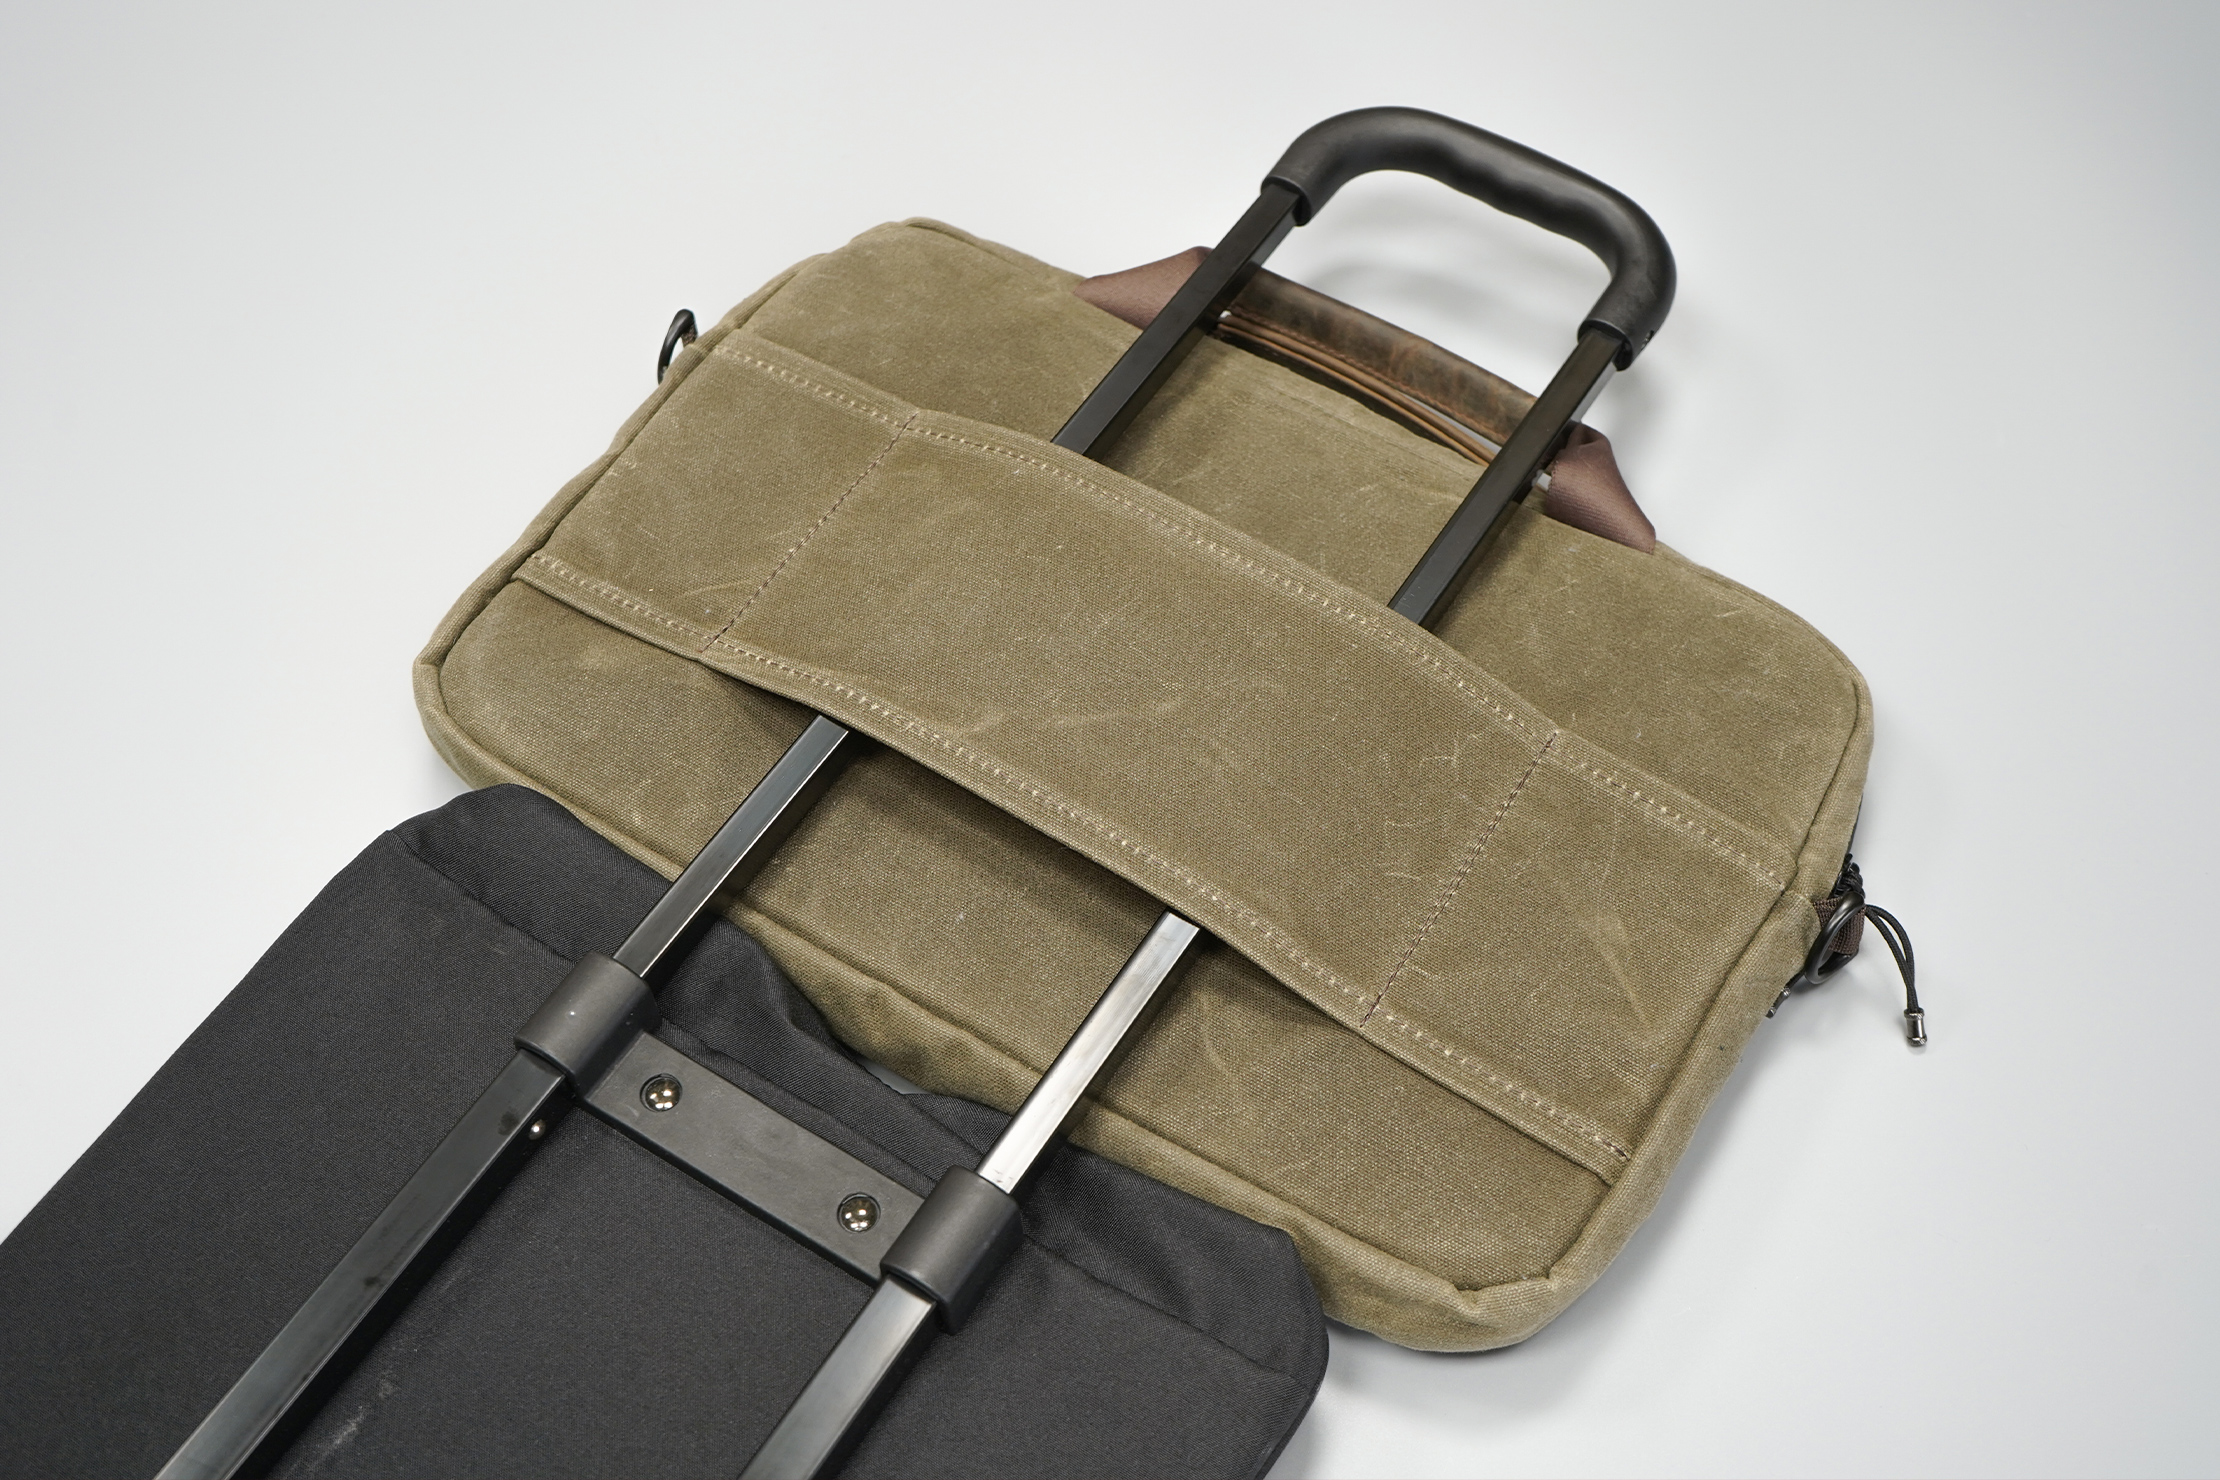 WaterField Designs Outback Duo Laptop Brief | The brief can hitch a ride on your luggage when your shoulder gets tired